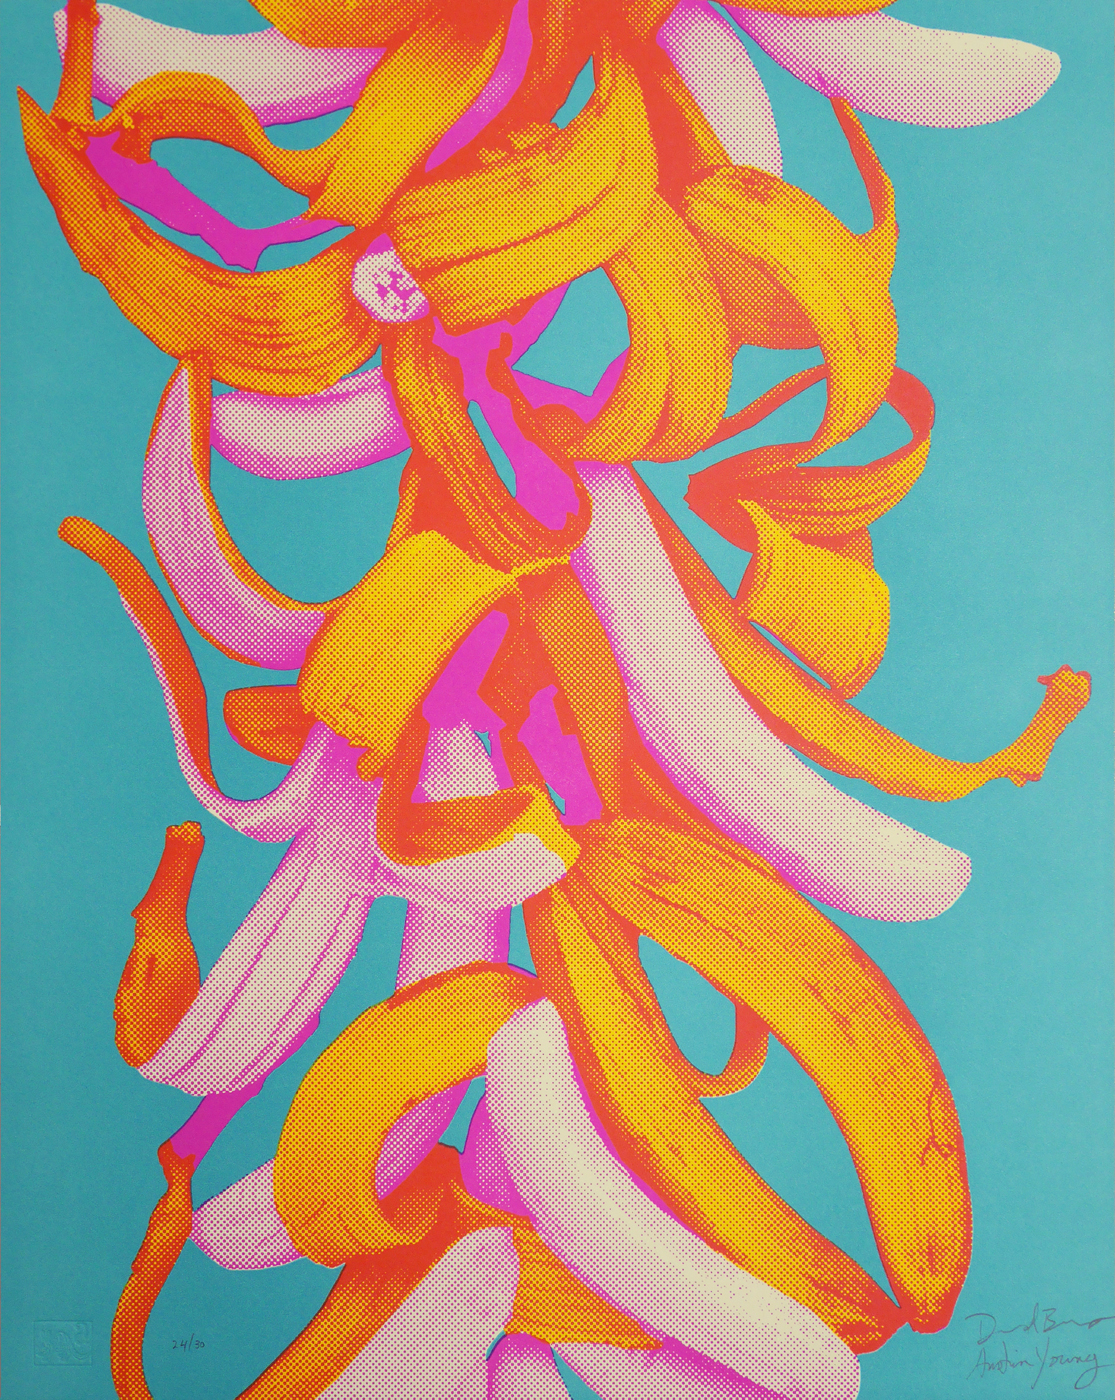 """""""Bananas in 3 colors"""" by Fallen Fruit (David Burns and Austin Young)"""